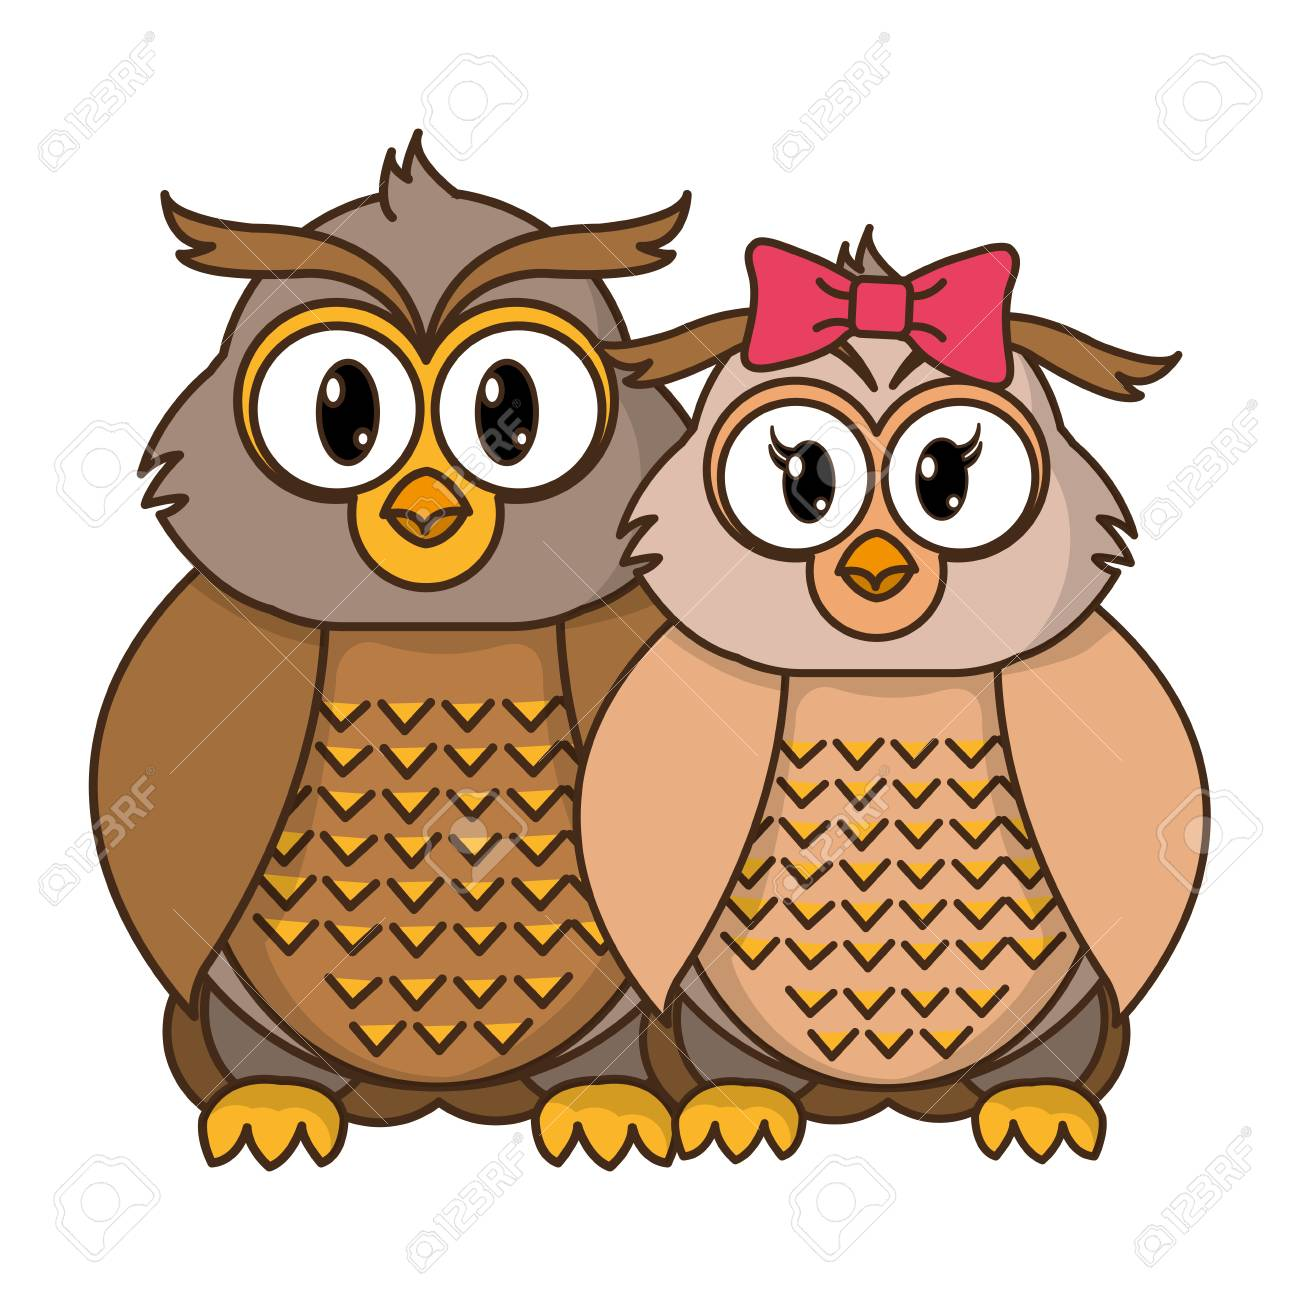 owl couple cute animal together vector illustration royalty free rh 123rf com vector owner vector owners manual